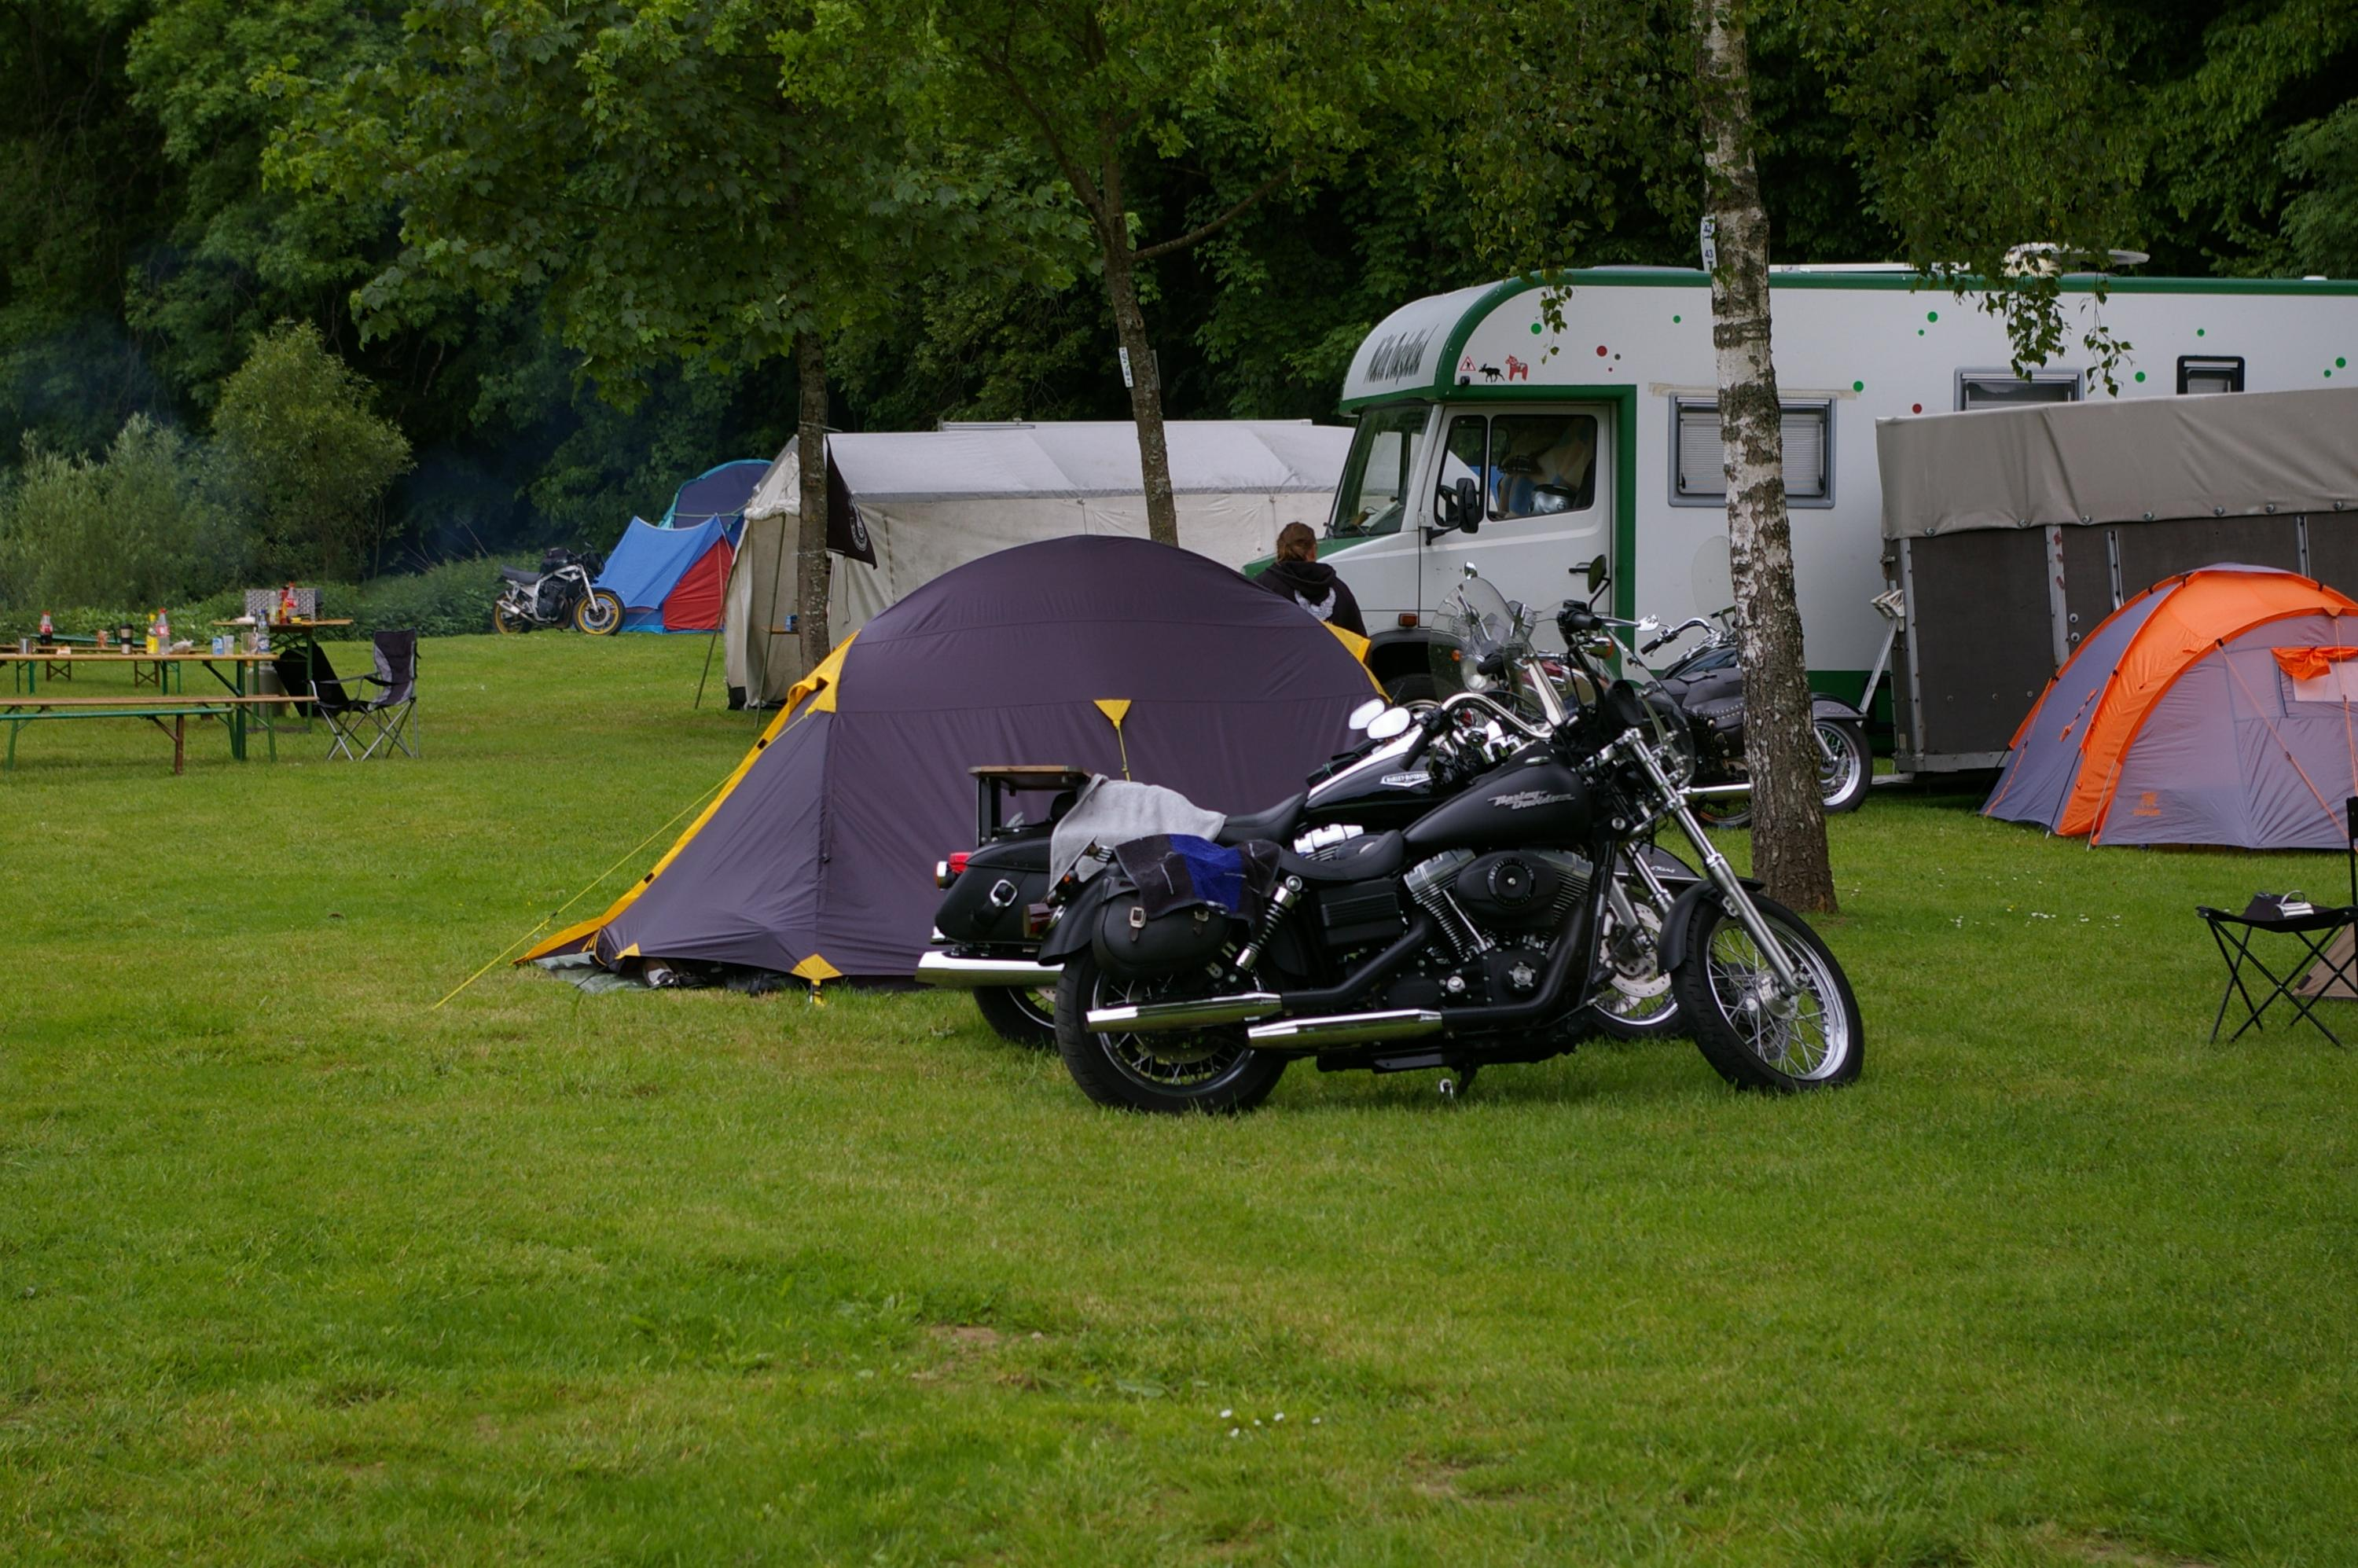 Le camping Saint Remacle, ami des motards.